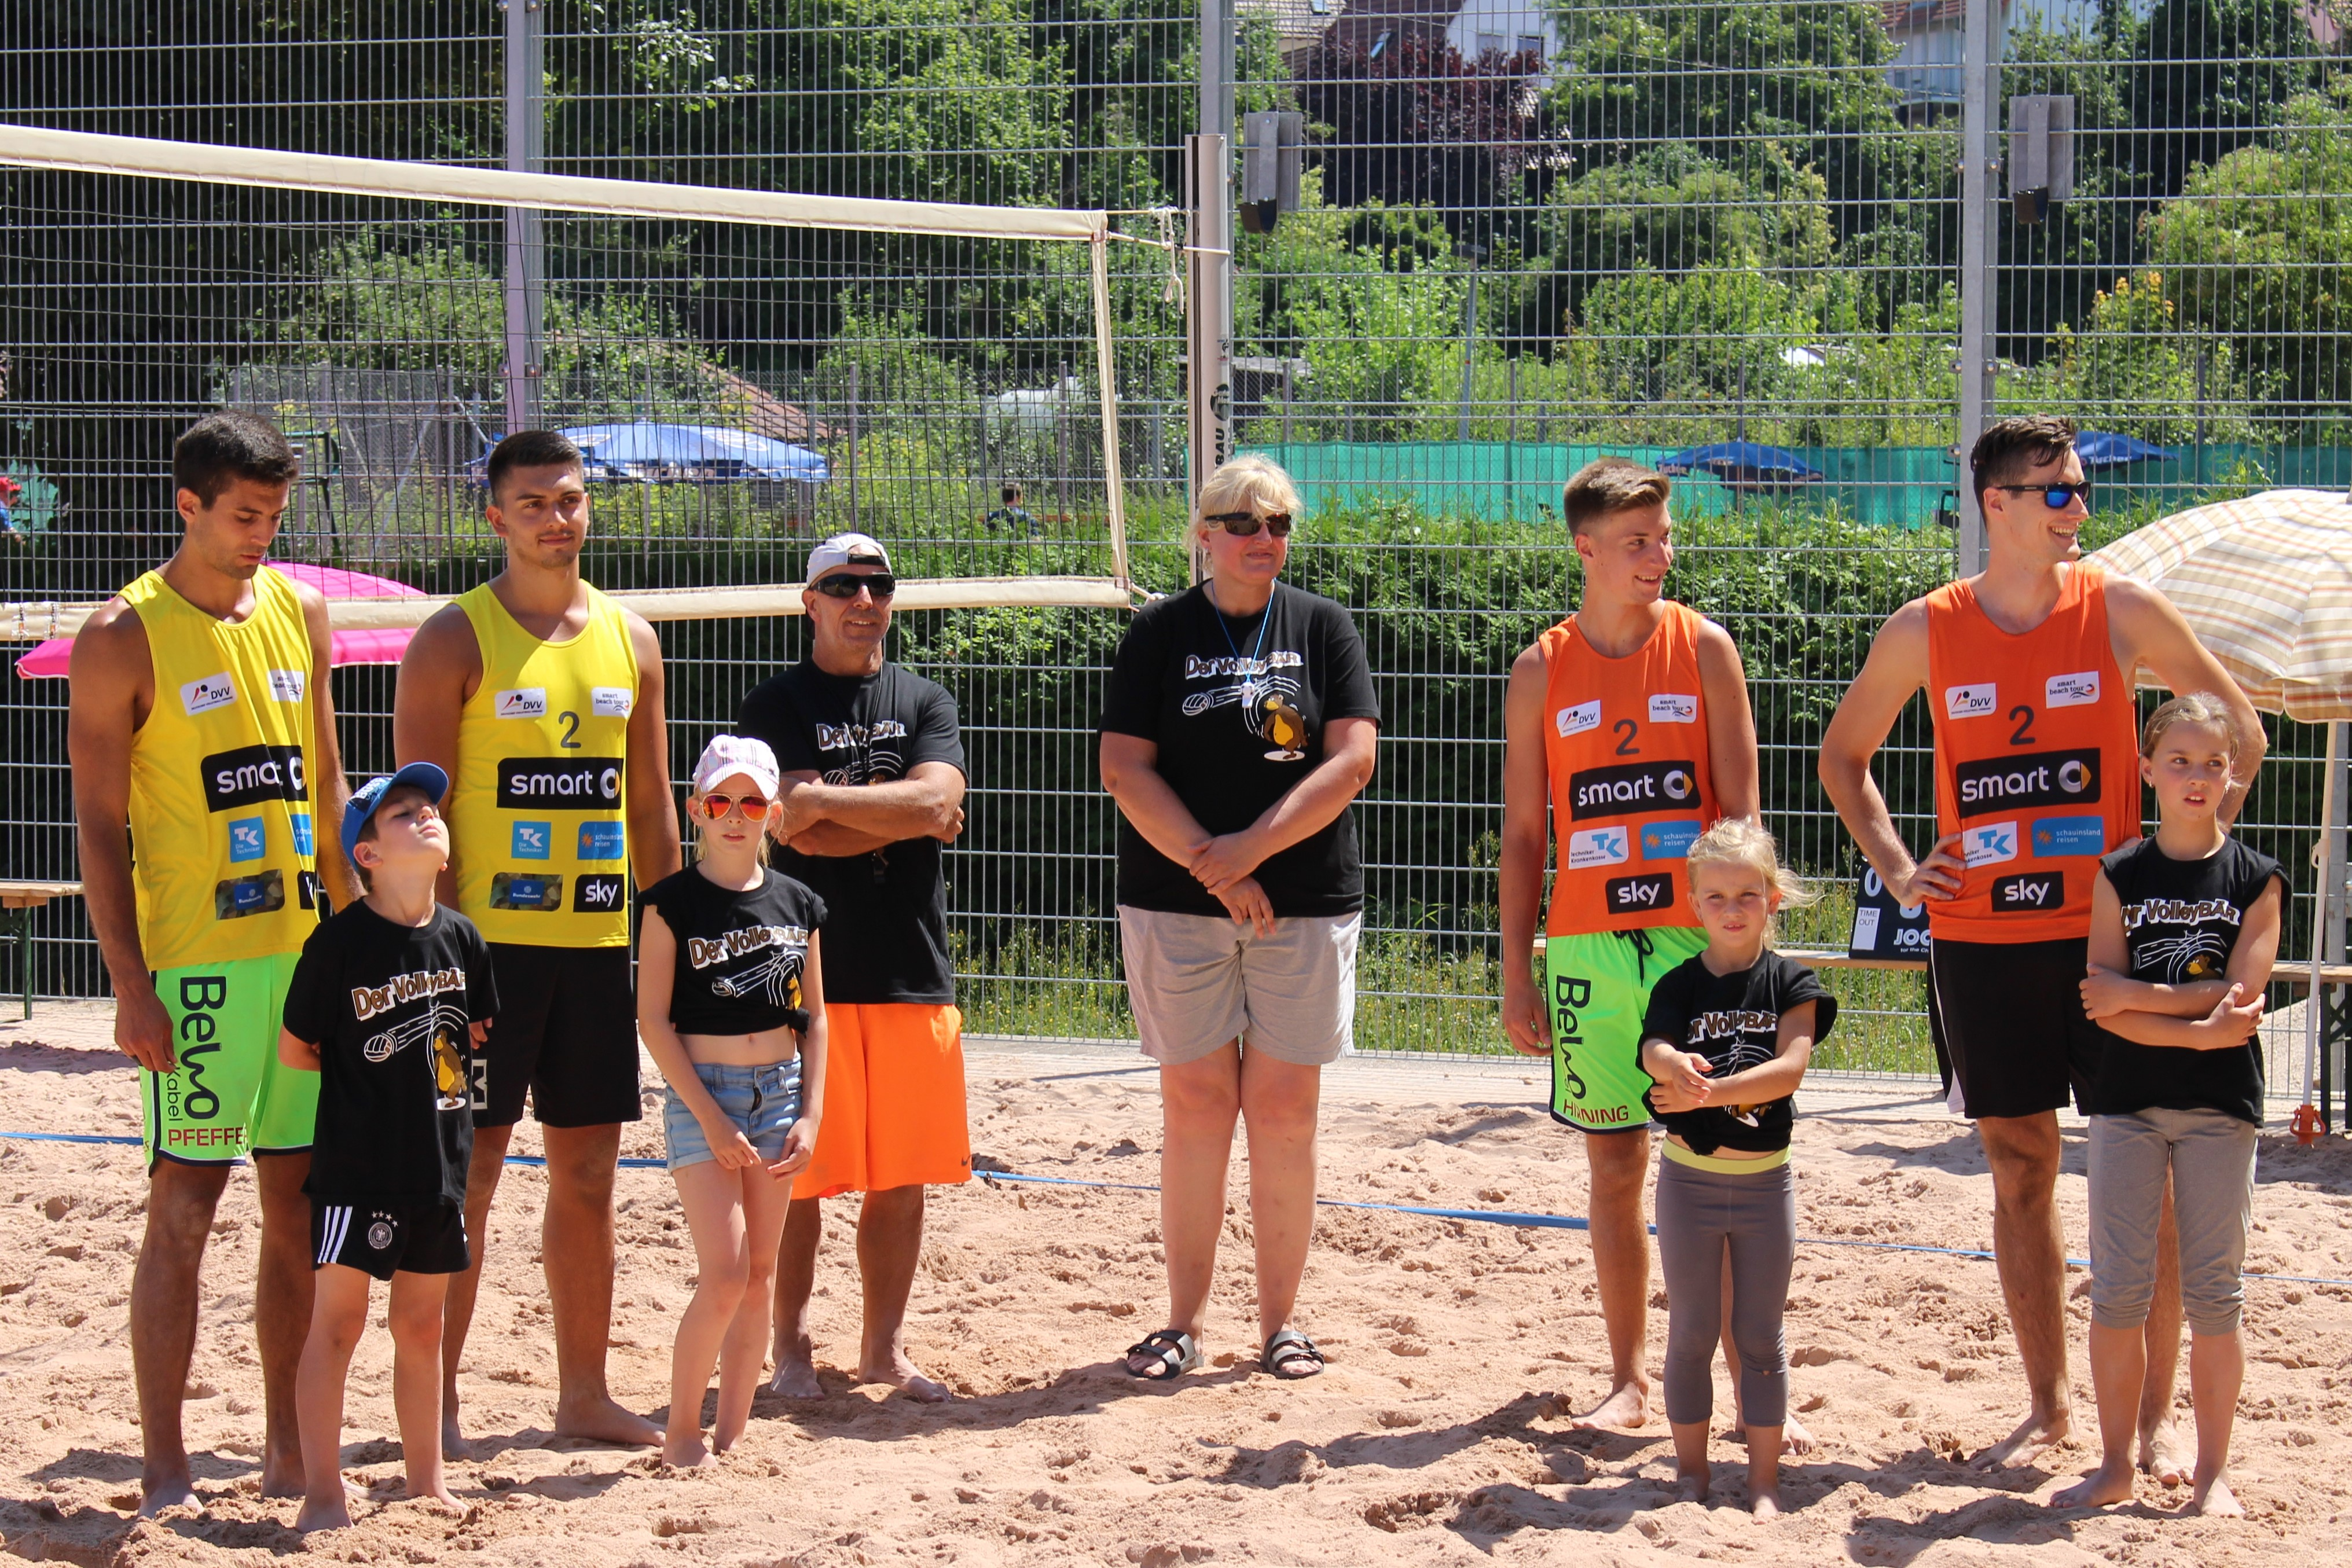 2018-07-08 - Beachvolleyball-Turnier Bondorf